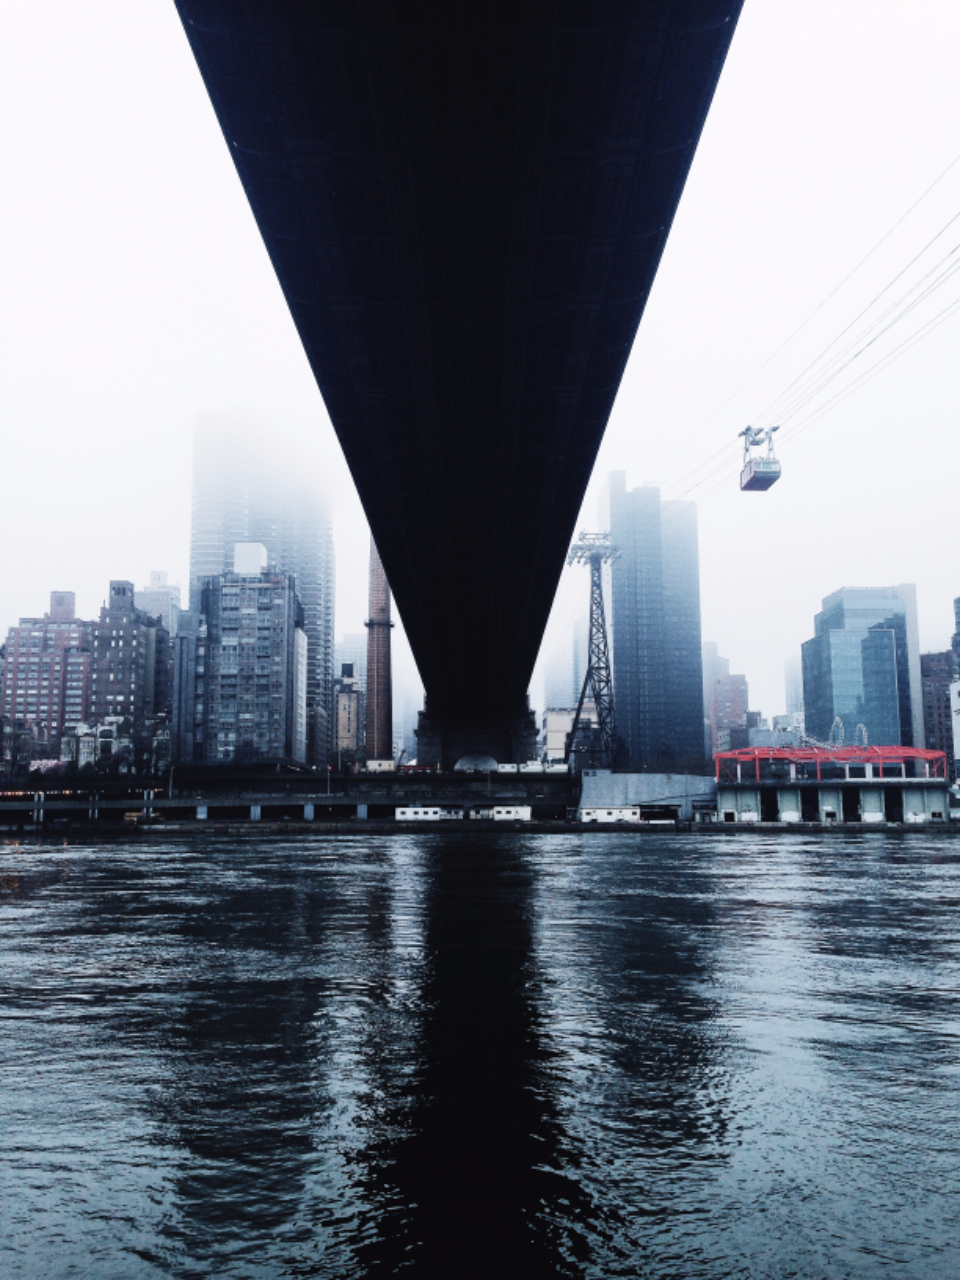 nyc new york architecture bridge car city fog reflection river under urban water hd